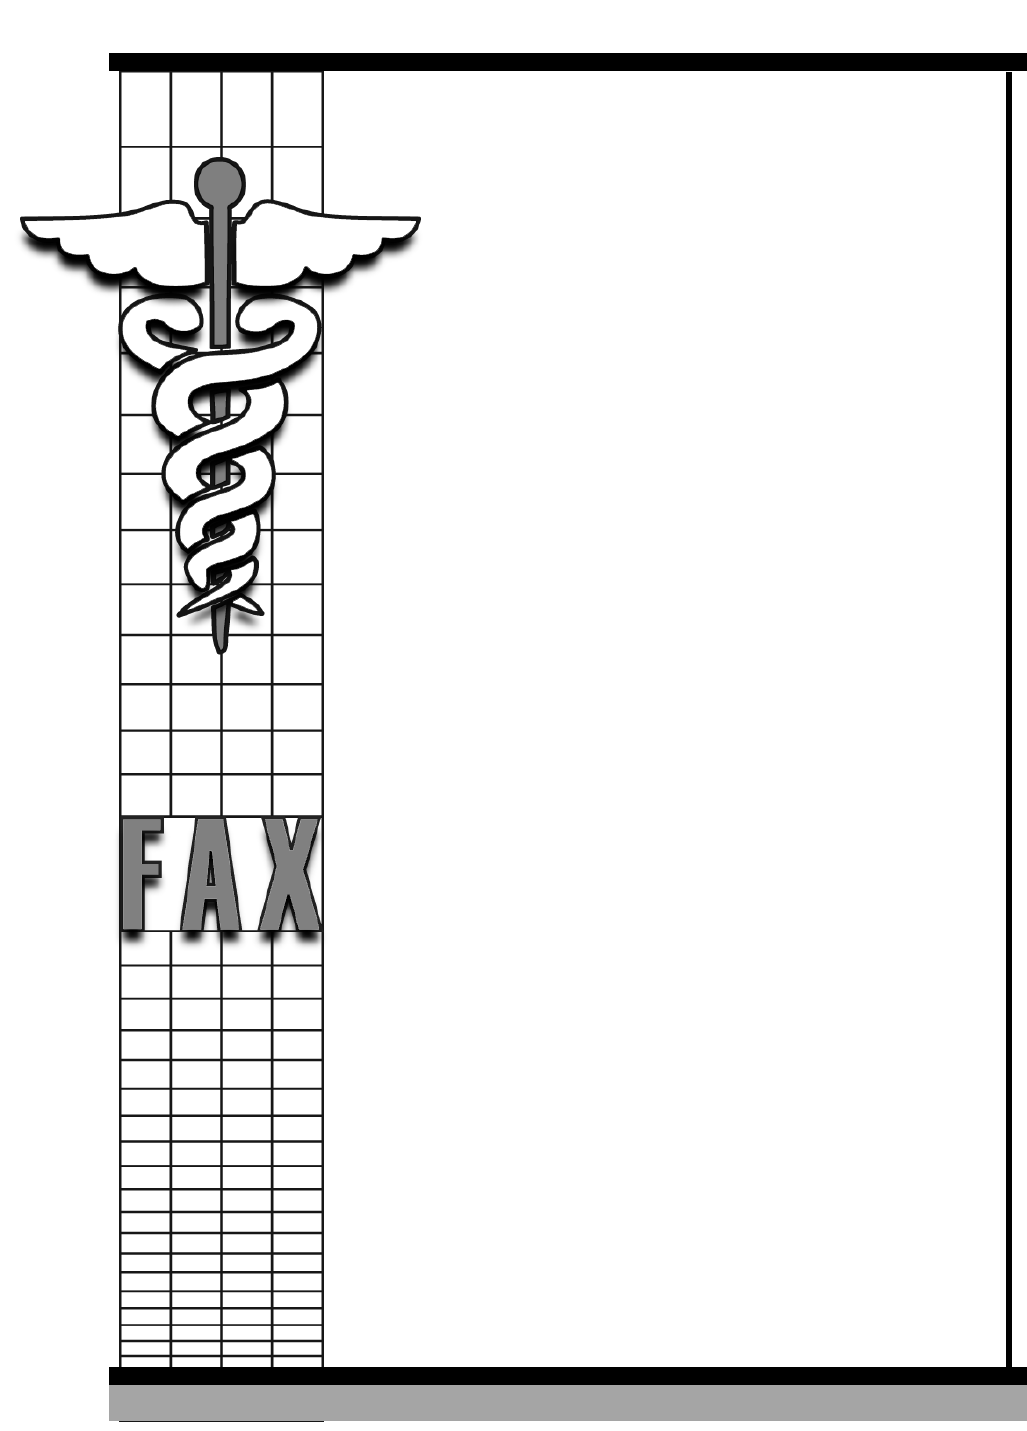 the medical fax cover sheet can help you make a professional and medical fax cover sheet